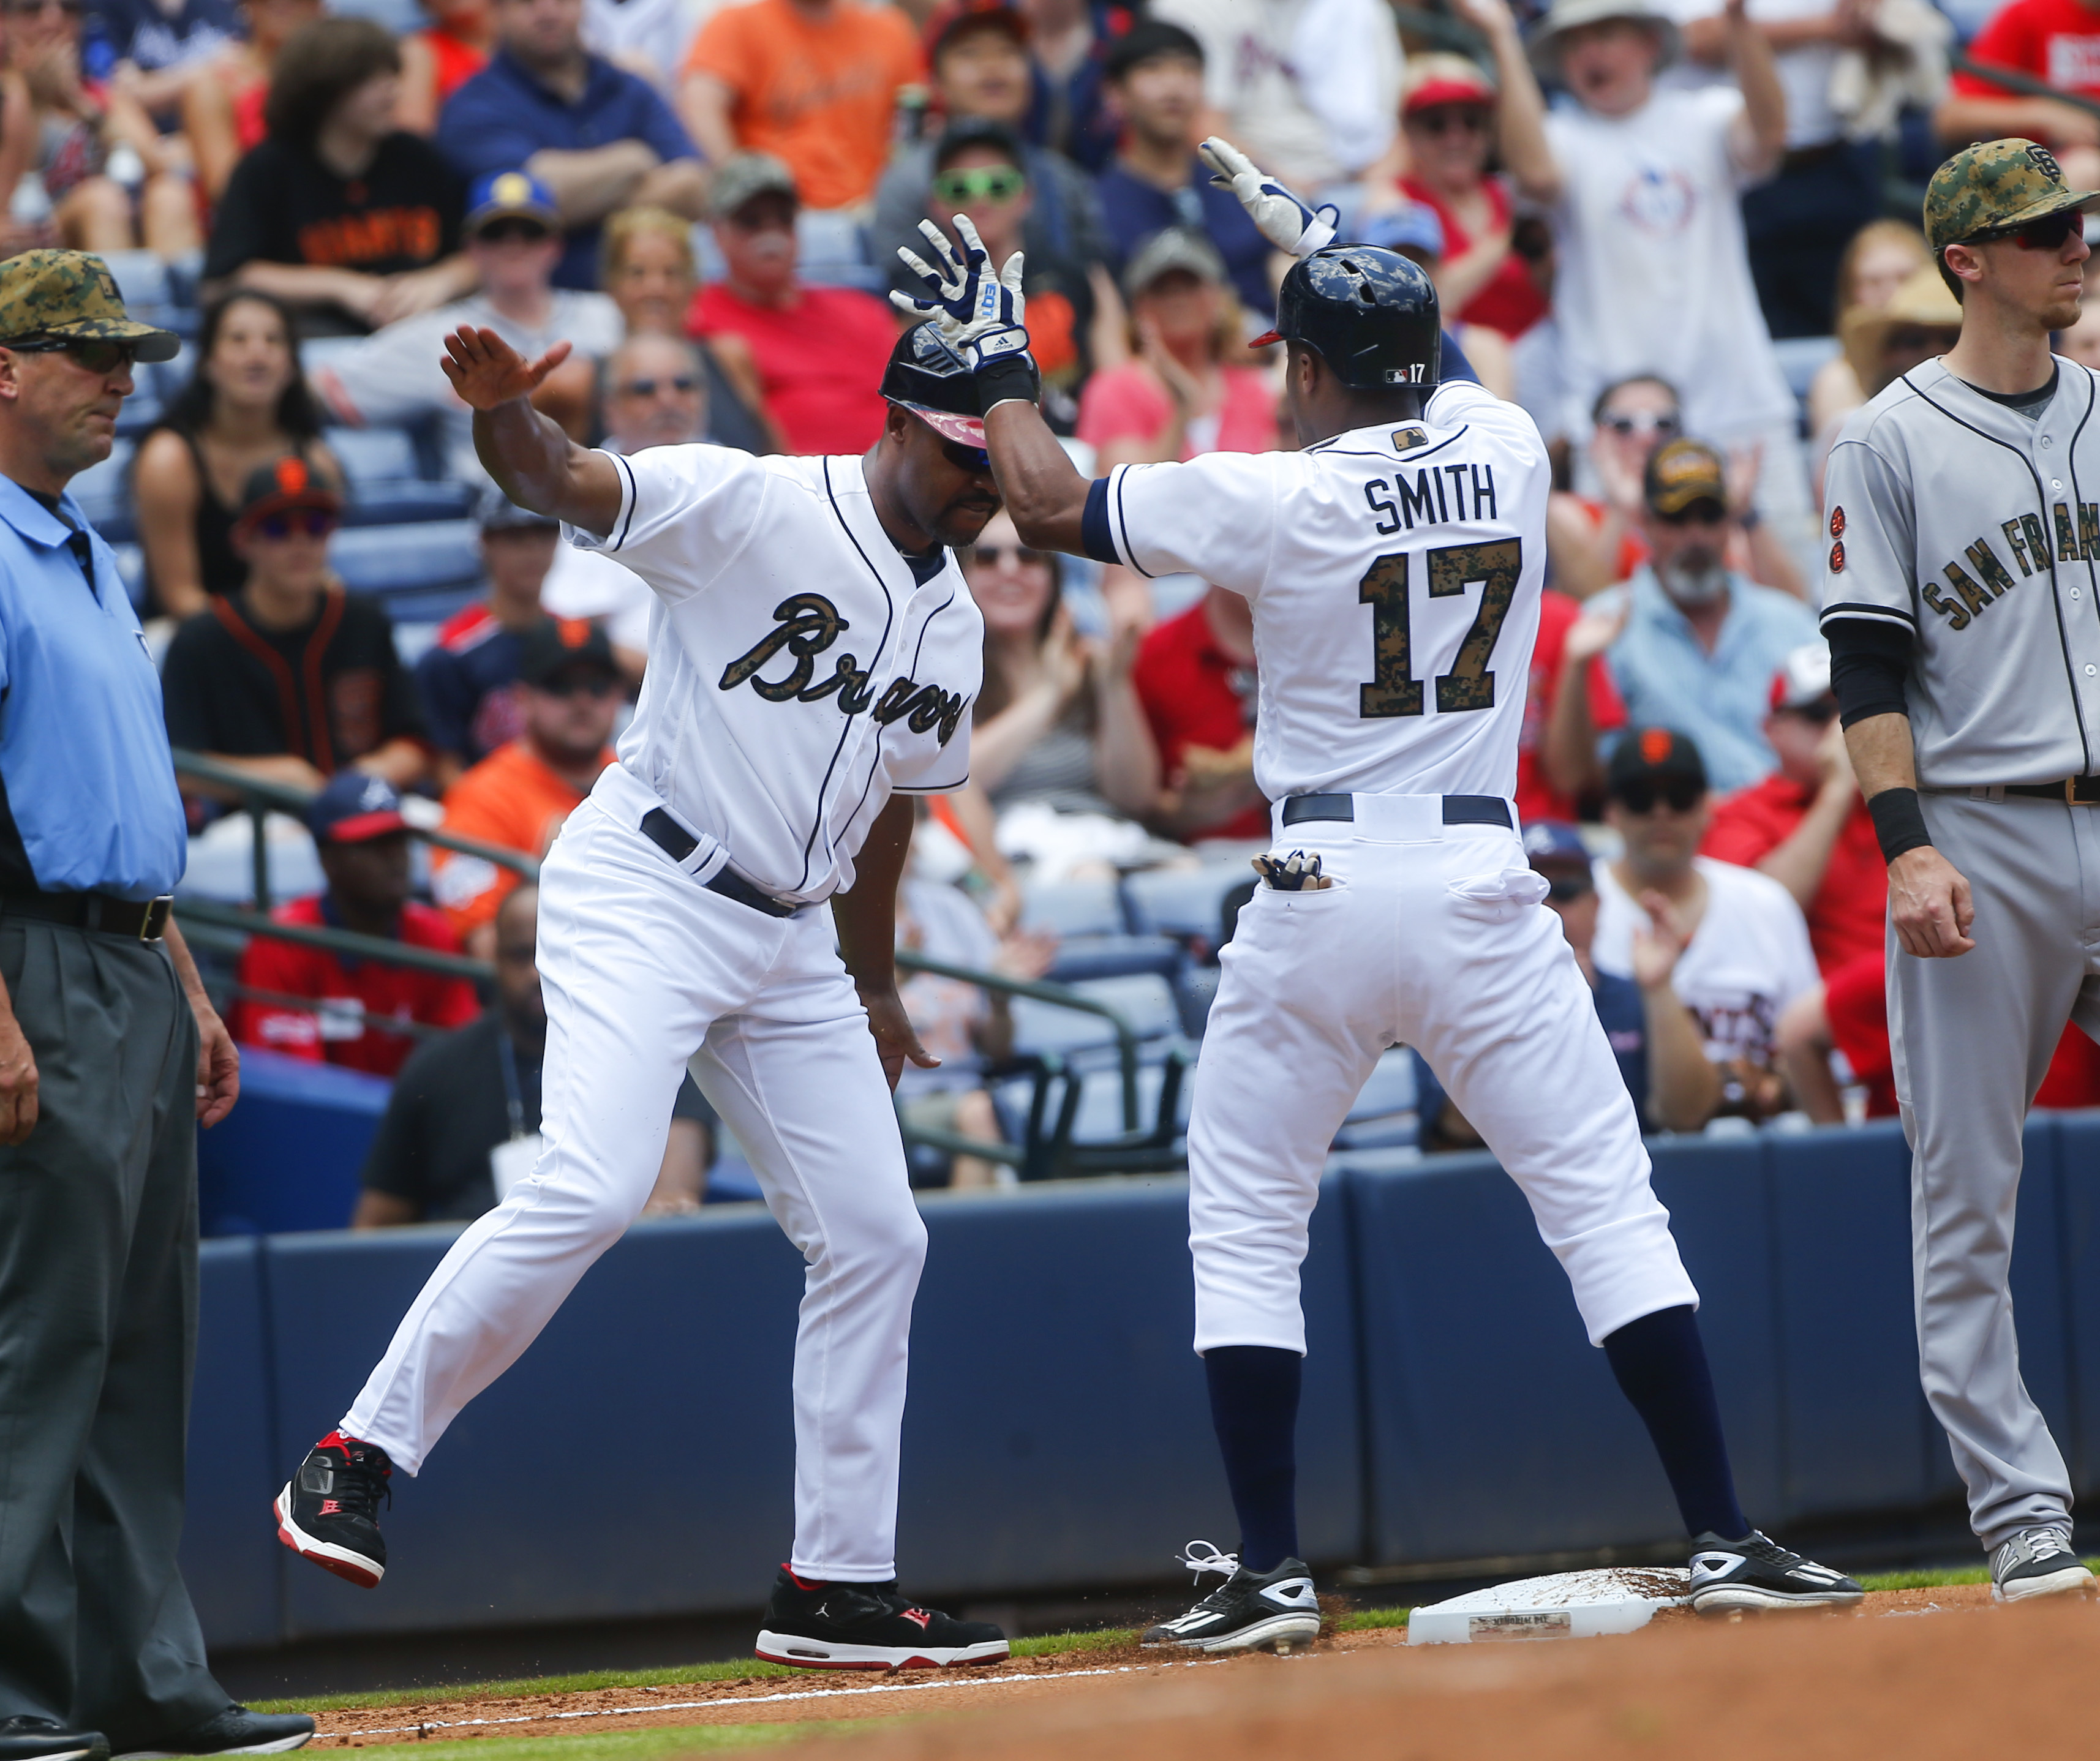 Atlanta Braves' Mallex Smith (17) celebrates with third base coach Bo Porter after a three-run triple in the second inning of a baseball game against the San Francisco Giants Monday, May 30, 2016, in Atlanta. (AP Photo/John Bazemore)